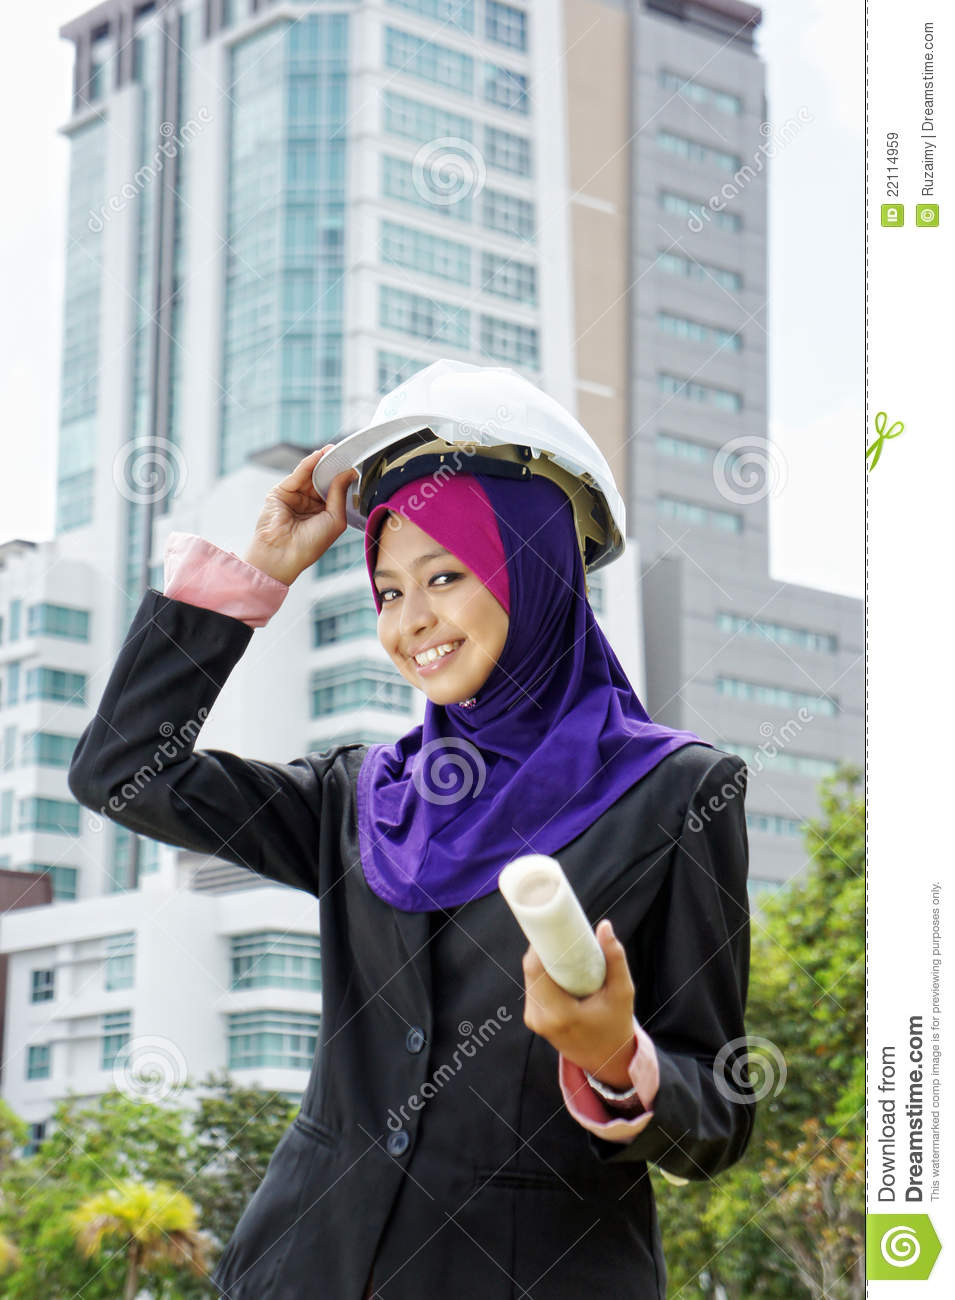 nassawadox single muslim girls Meet muslim women and find your true love at muslimacom sign up today and browse profiles of muslim women for freelink value.